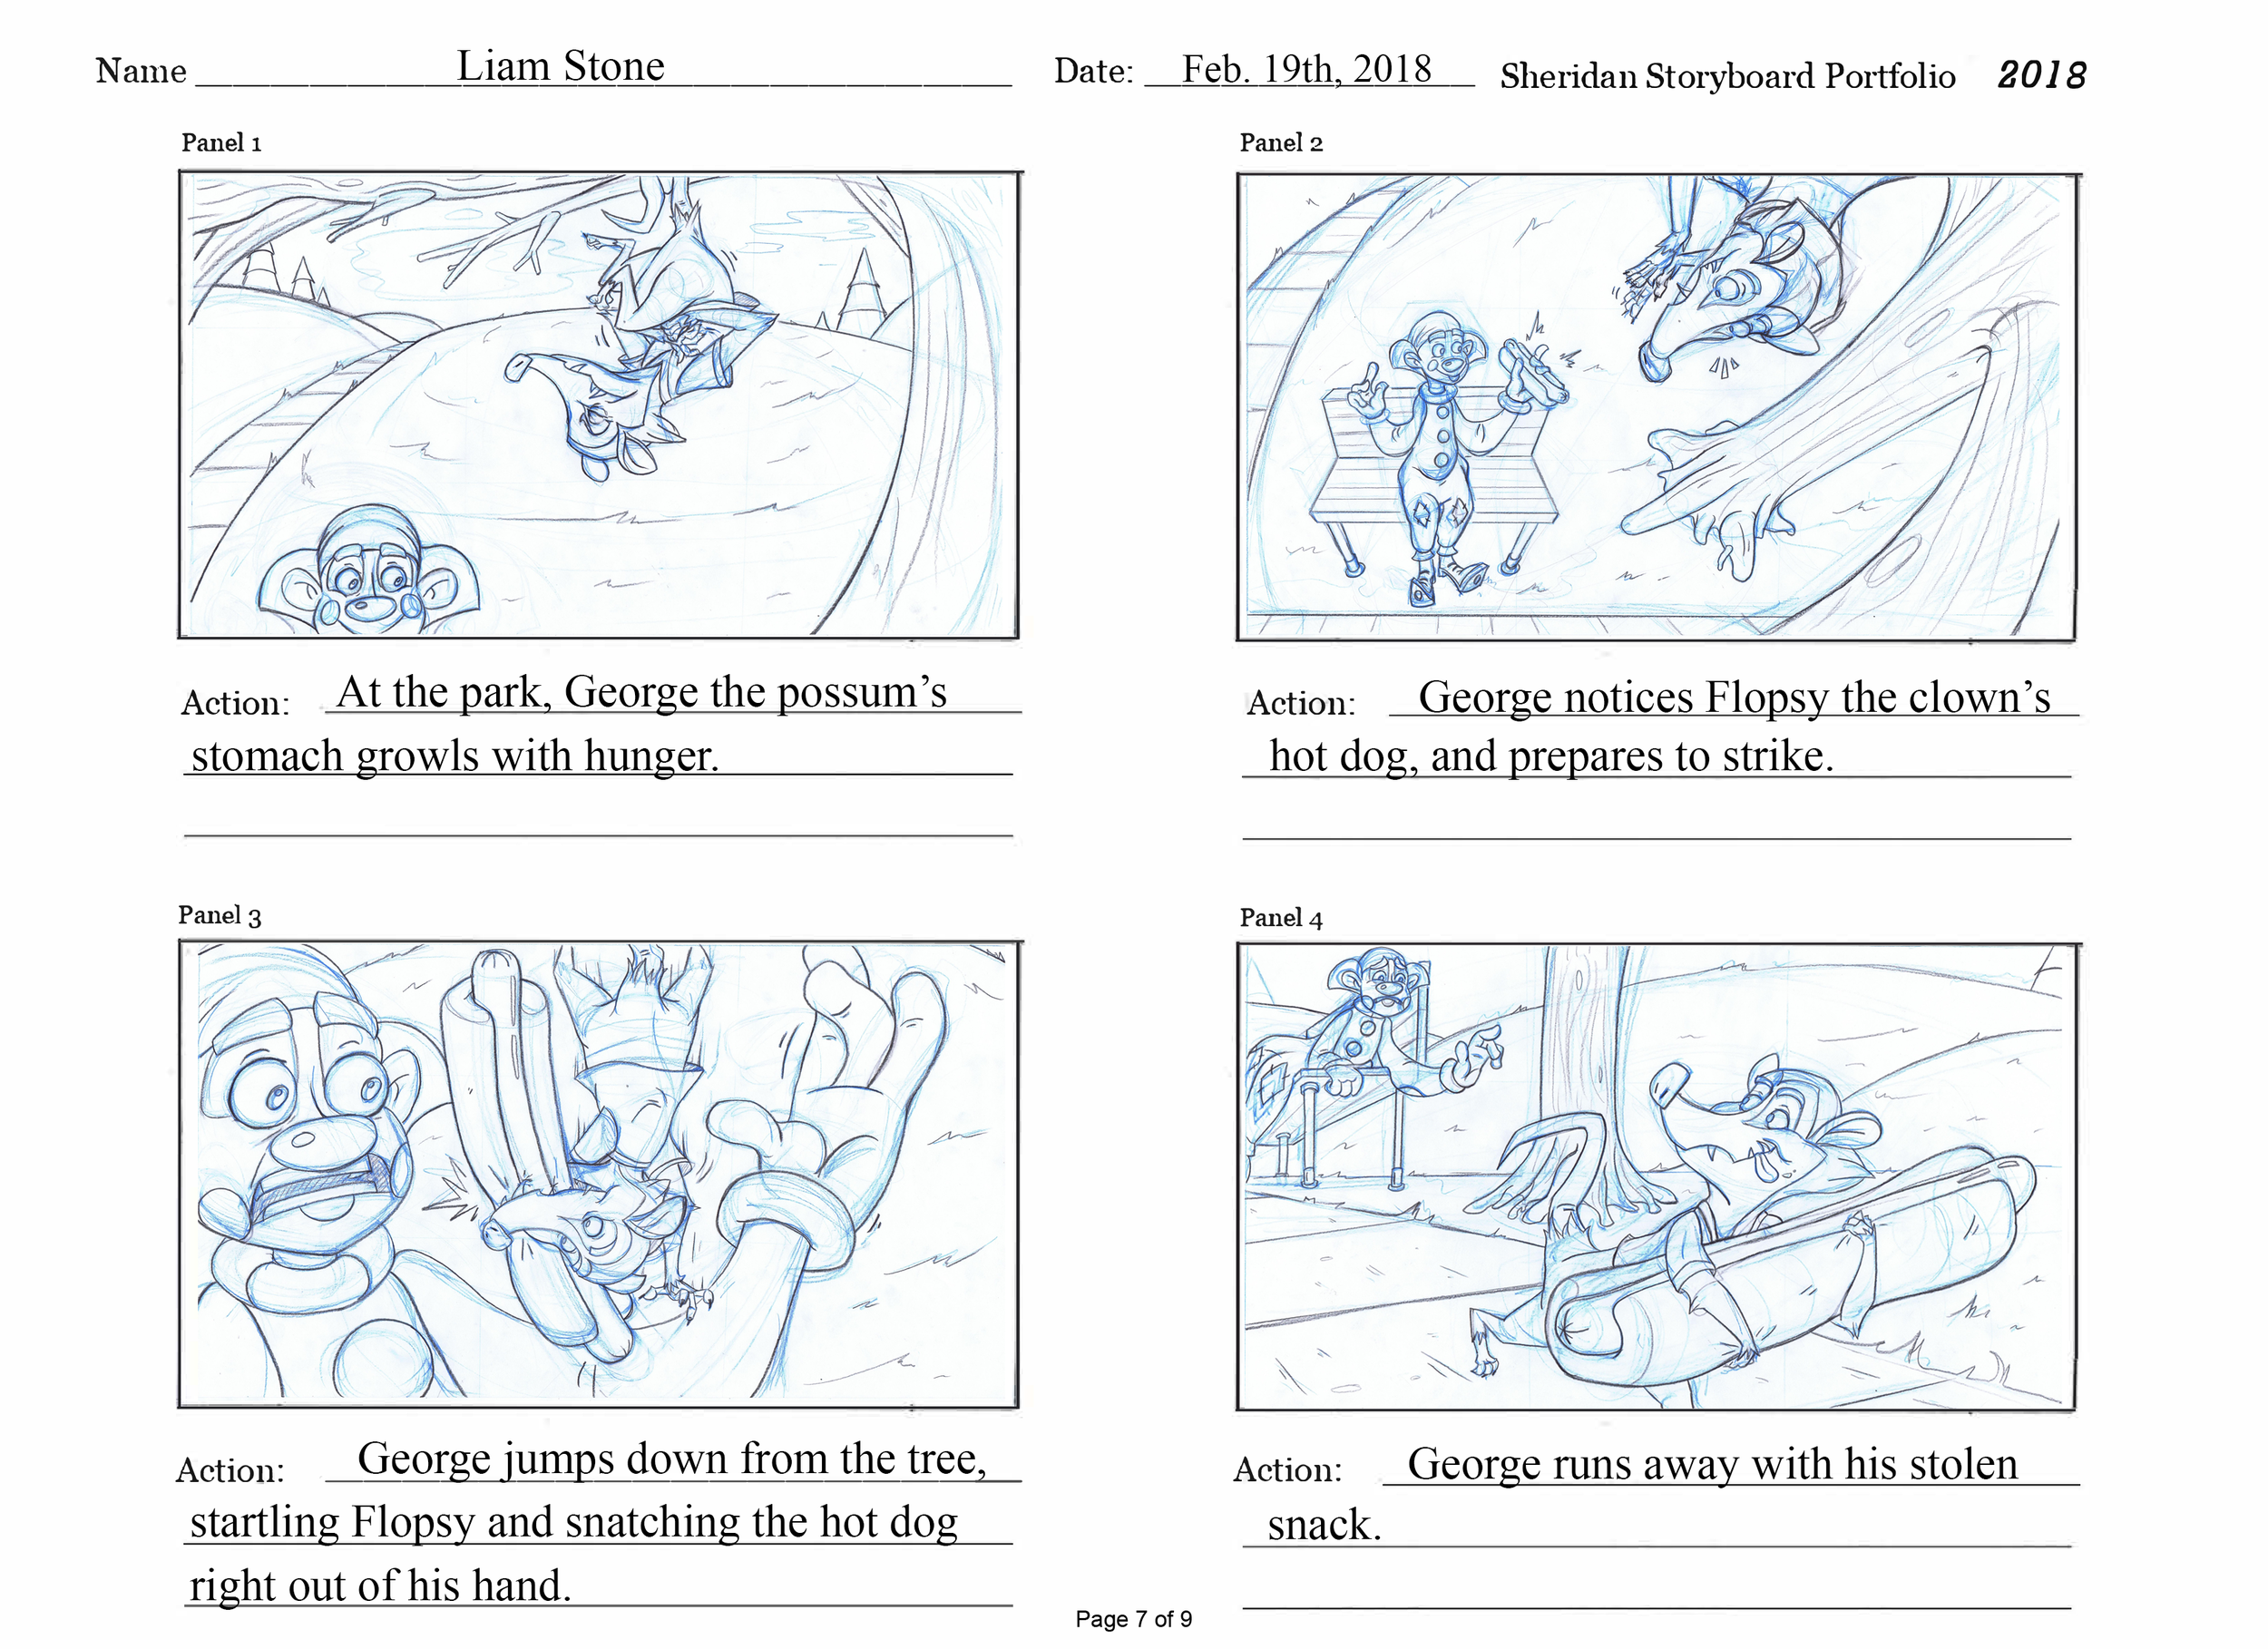 Liam_Stone_Storyboard.png